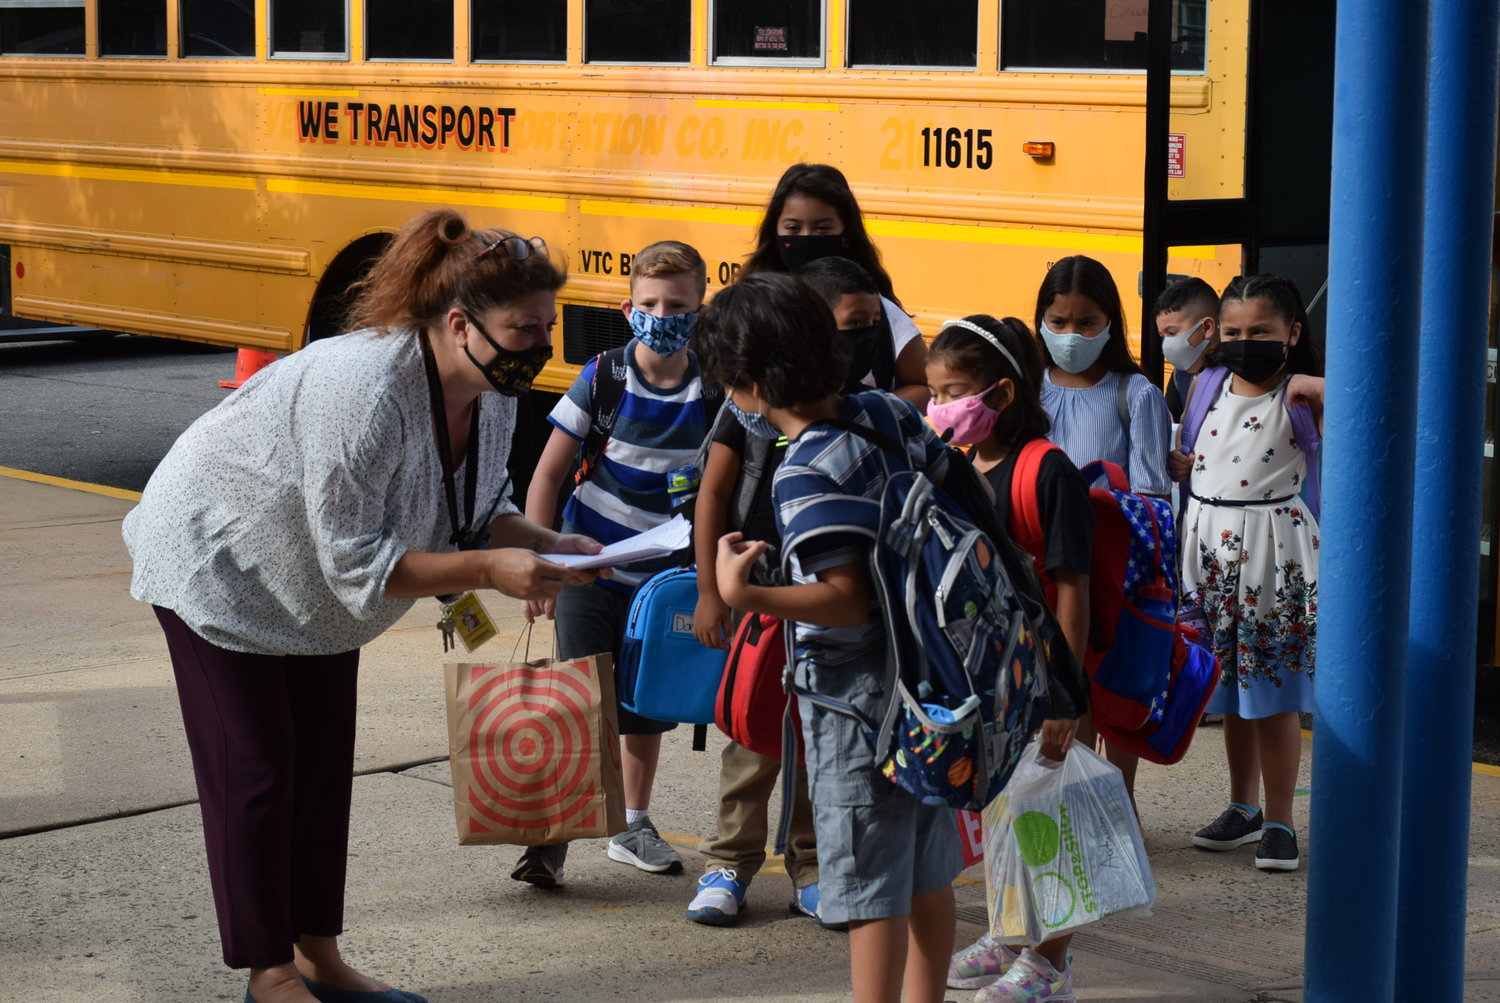 Cornwell Avenue School Principal Deanna Sinito checked students in for their first day of school.